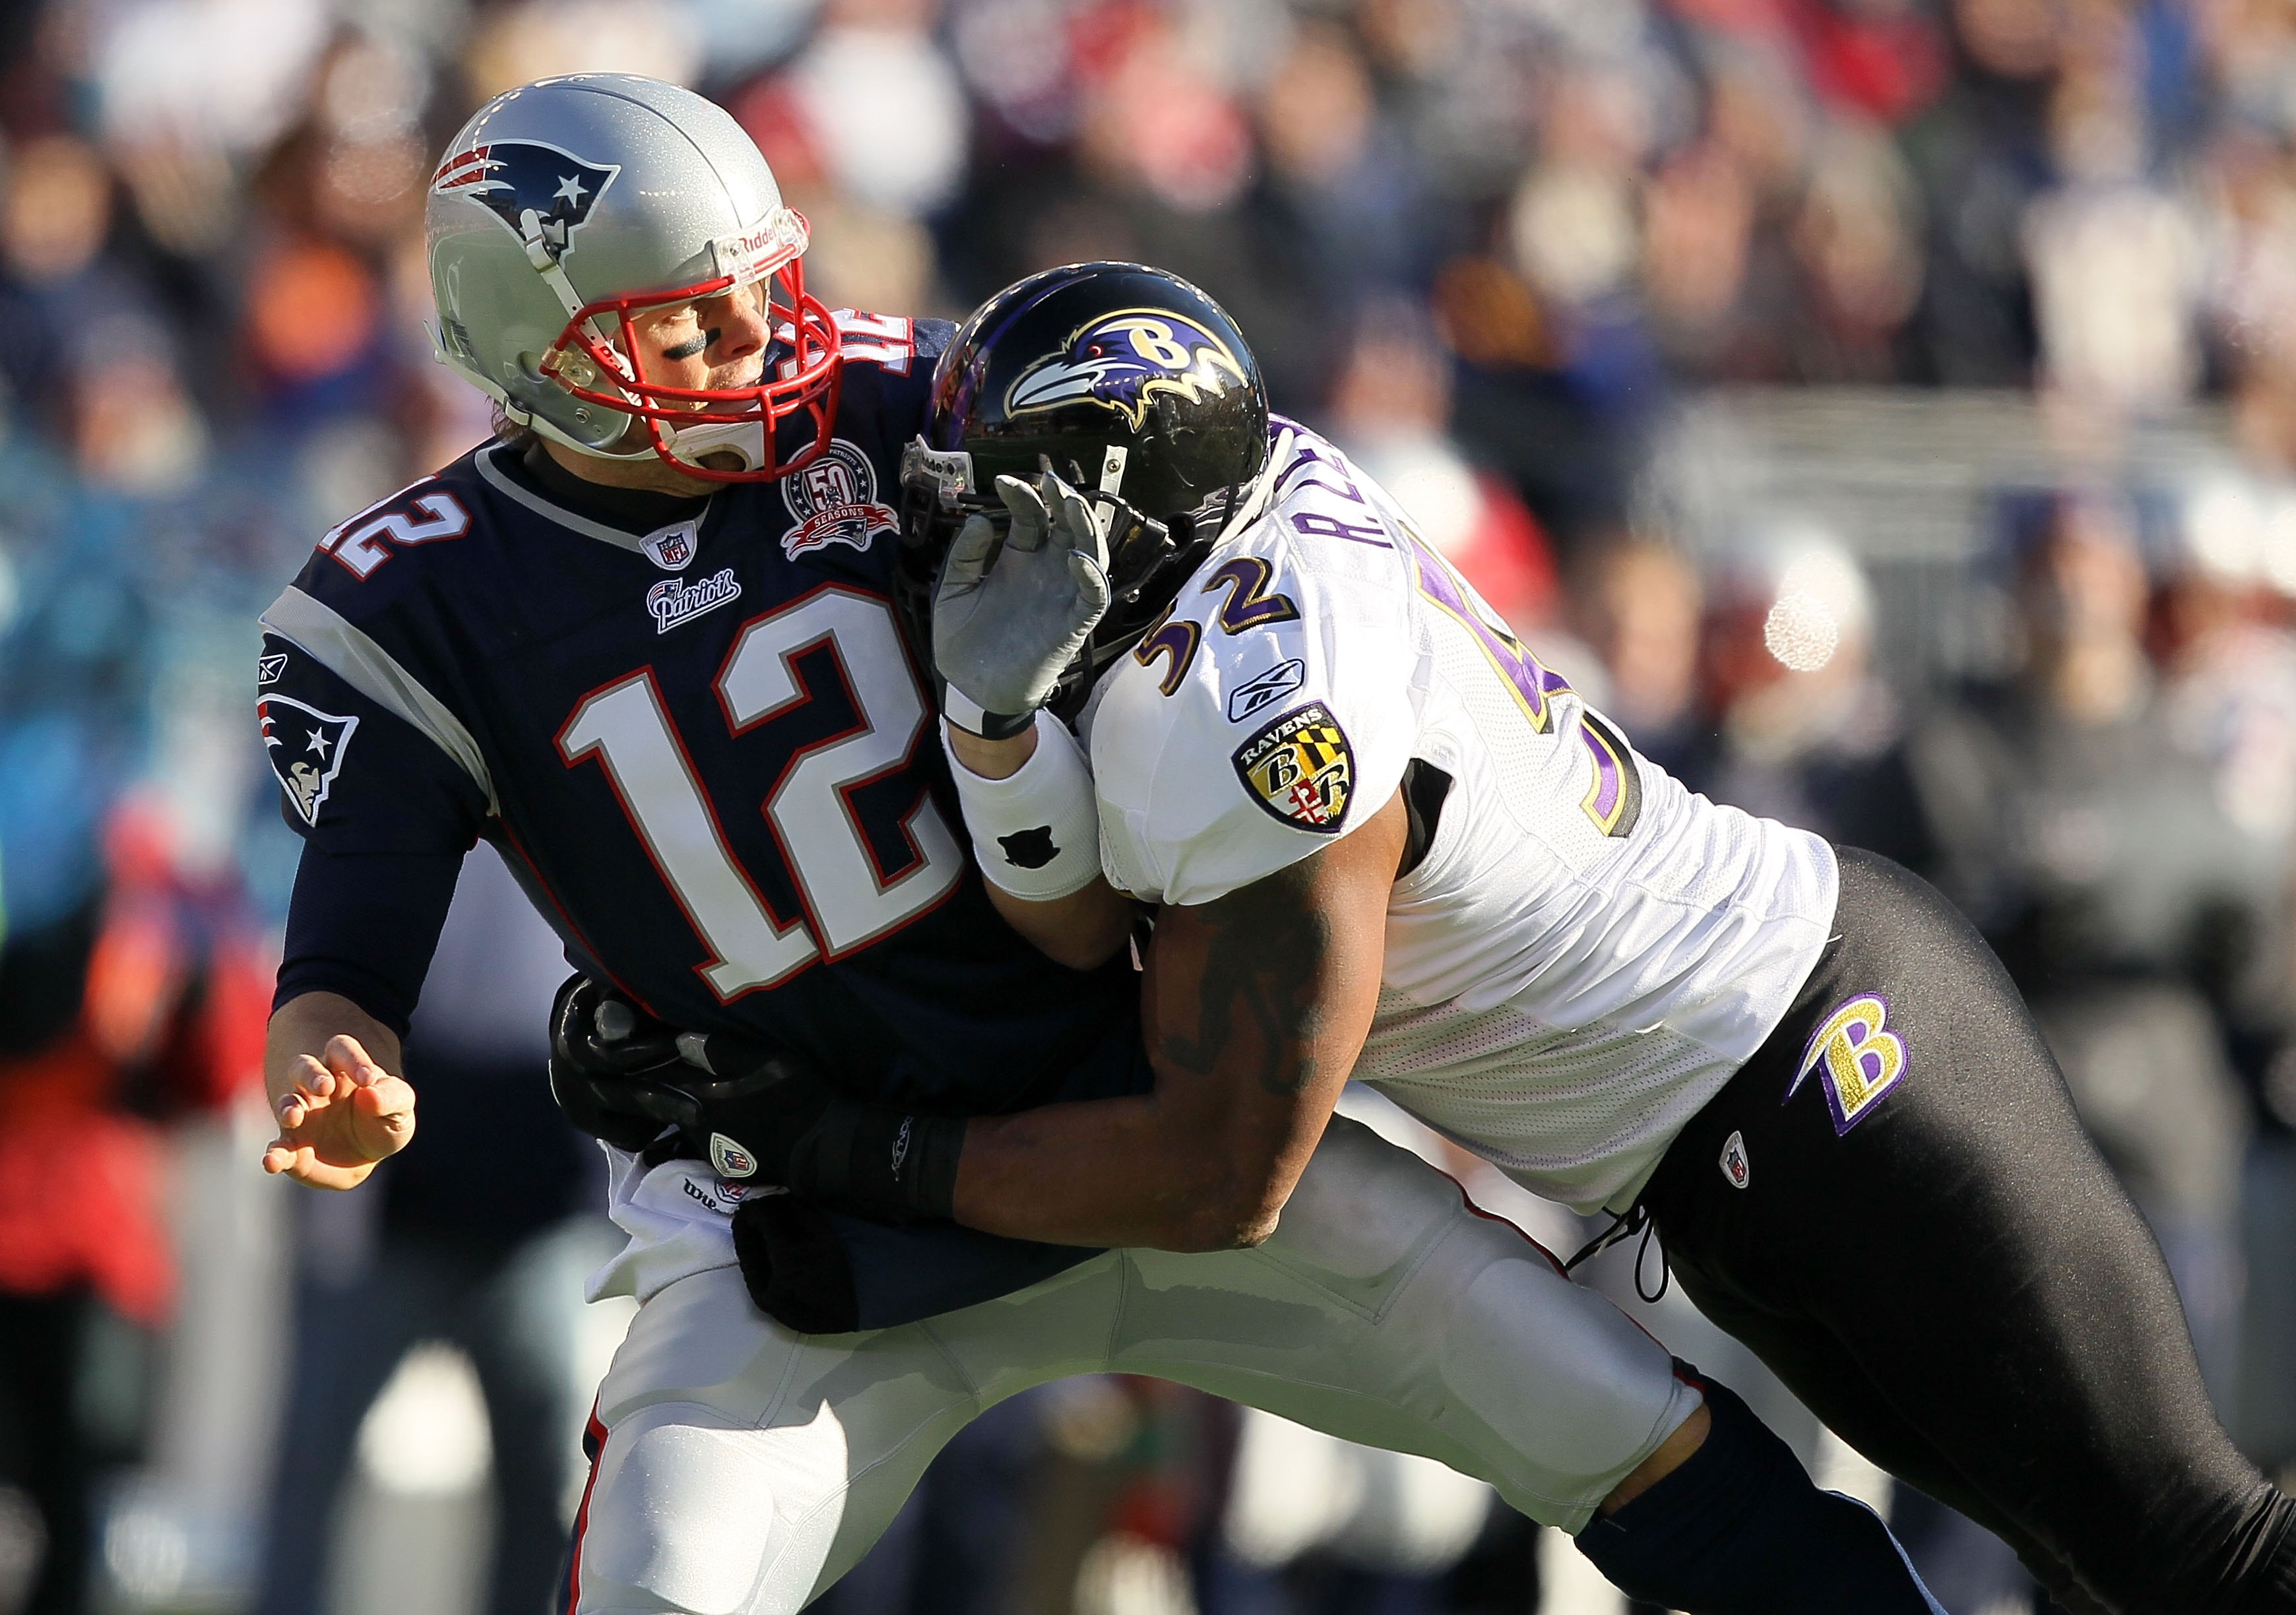 FOXBORO, MA - JANUARY 10:  Quarterback Tom Brady #12 of the New England Patriots is hit by Ray Lewis #52 of the Baltimore Ravens during the 2010 AFC wild-card playoff game at Gillette Stadium on January 10, 2010 in Foxboro, Massachusetts. The Ravens won 3